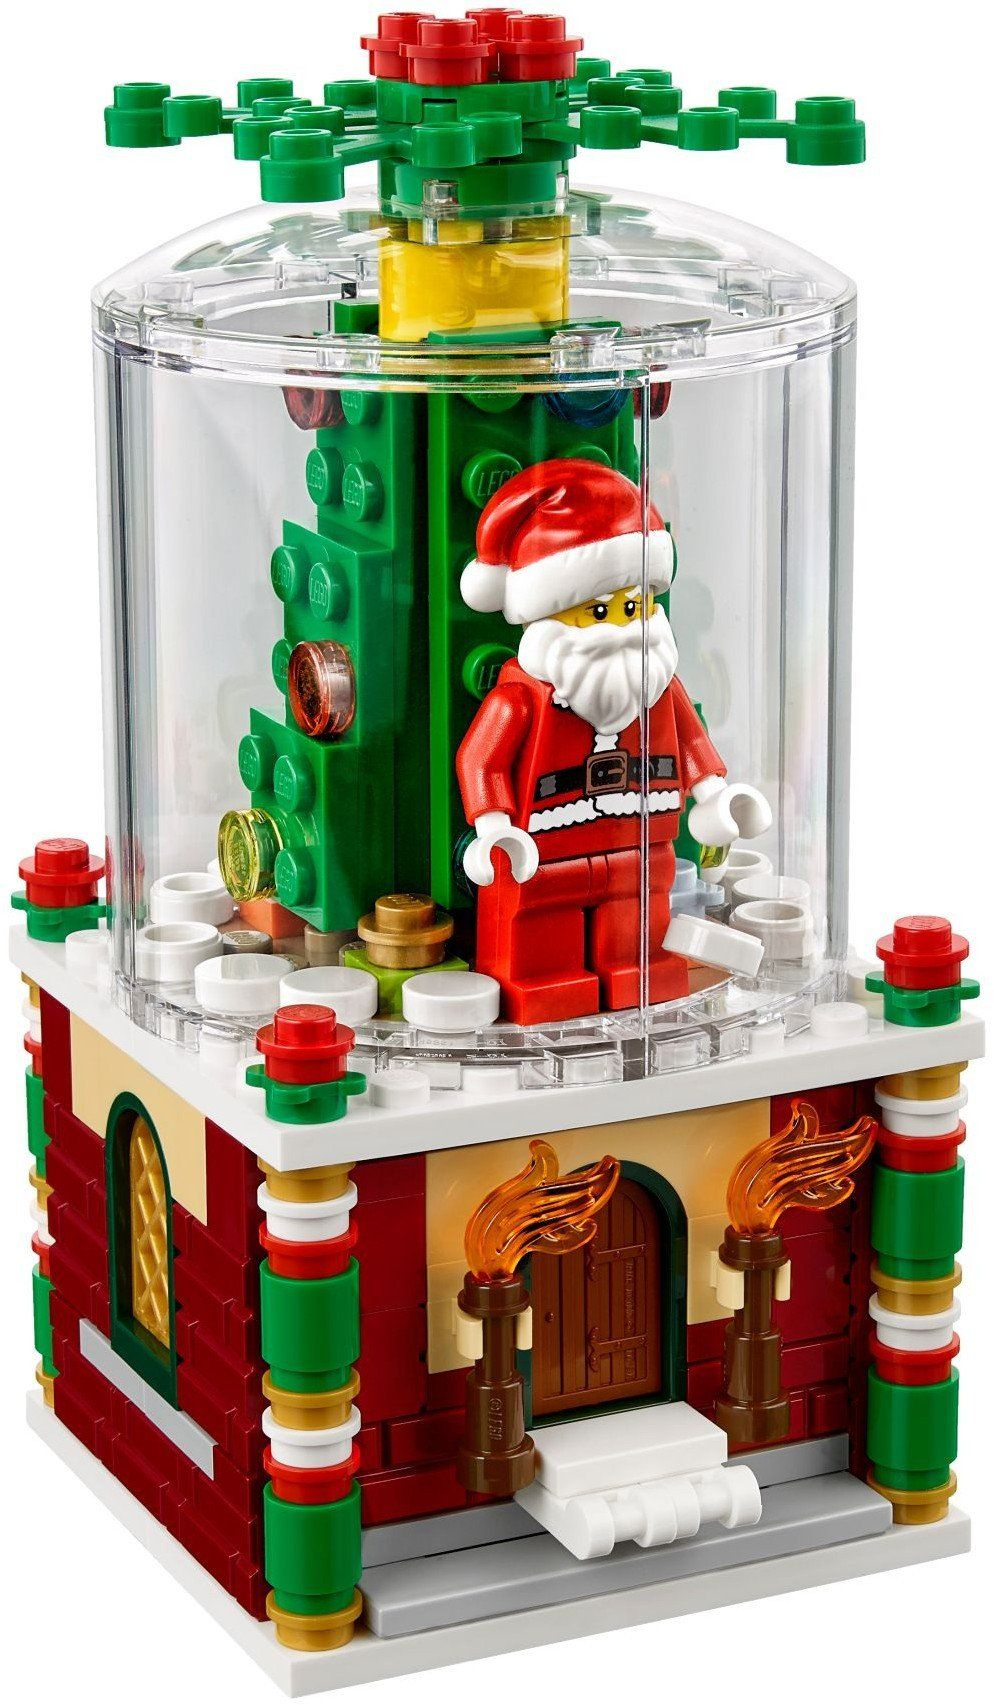 Lego 2019 Christmas Set Lego 40223 Exclusive Limited Edition Snowglobe | 2018 2019 Theme